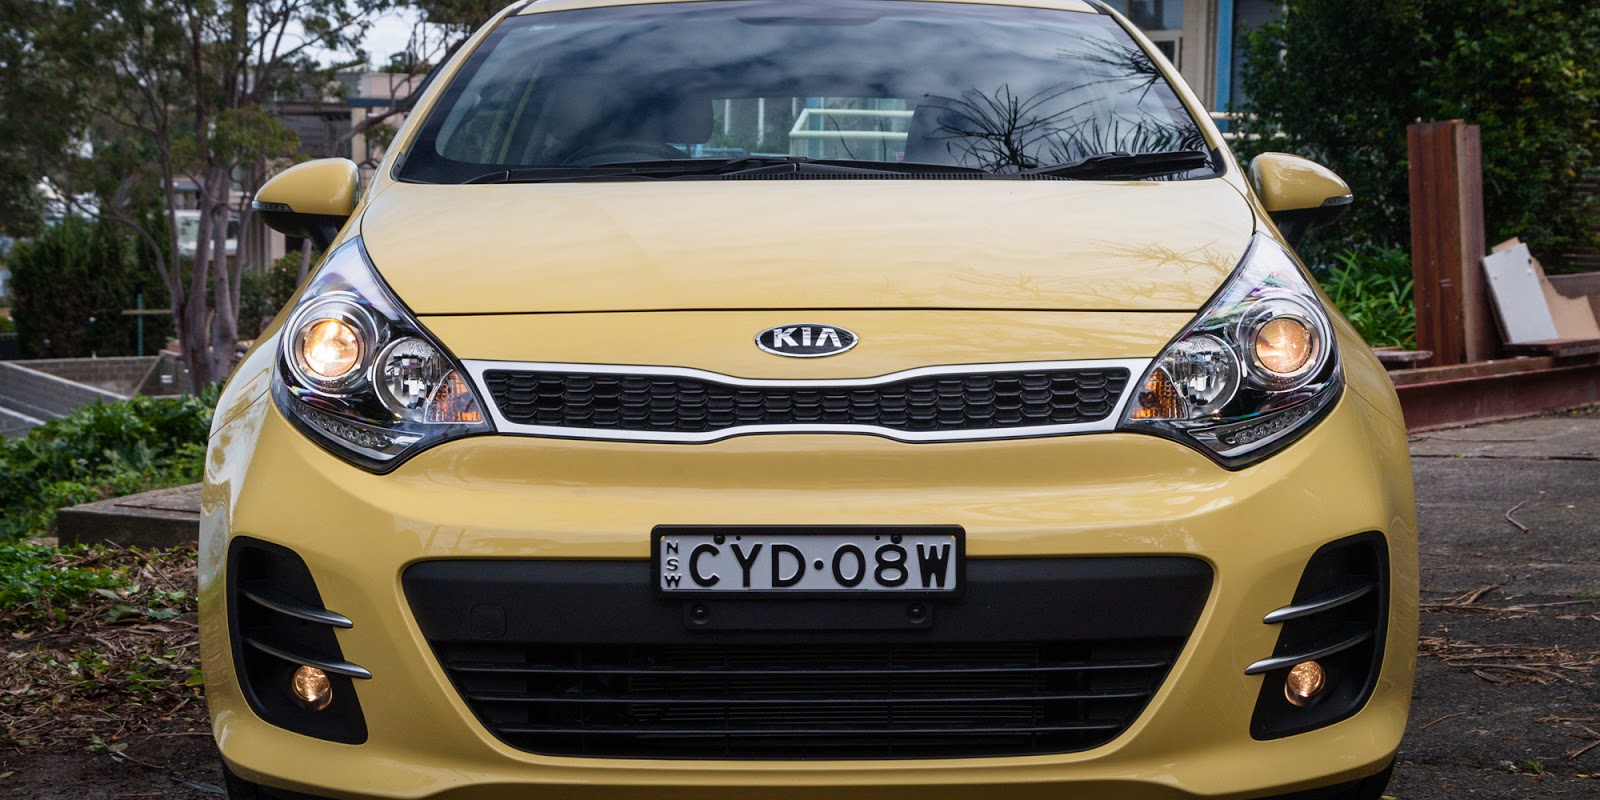 2016 kia rio sport review latest cars and reviews. Black Bedroom Furniture Sets. Home Design Ideas